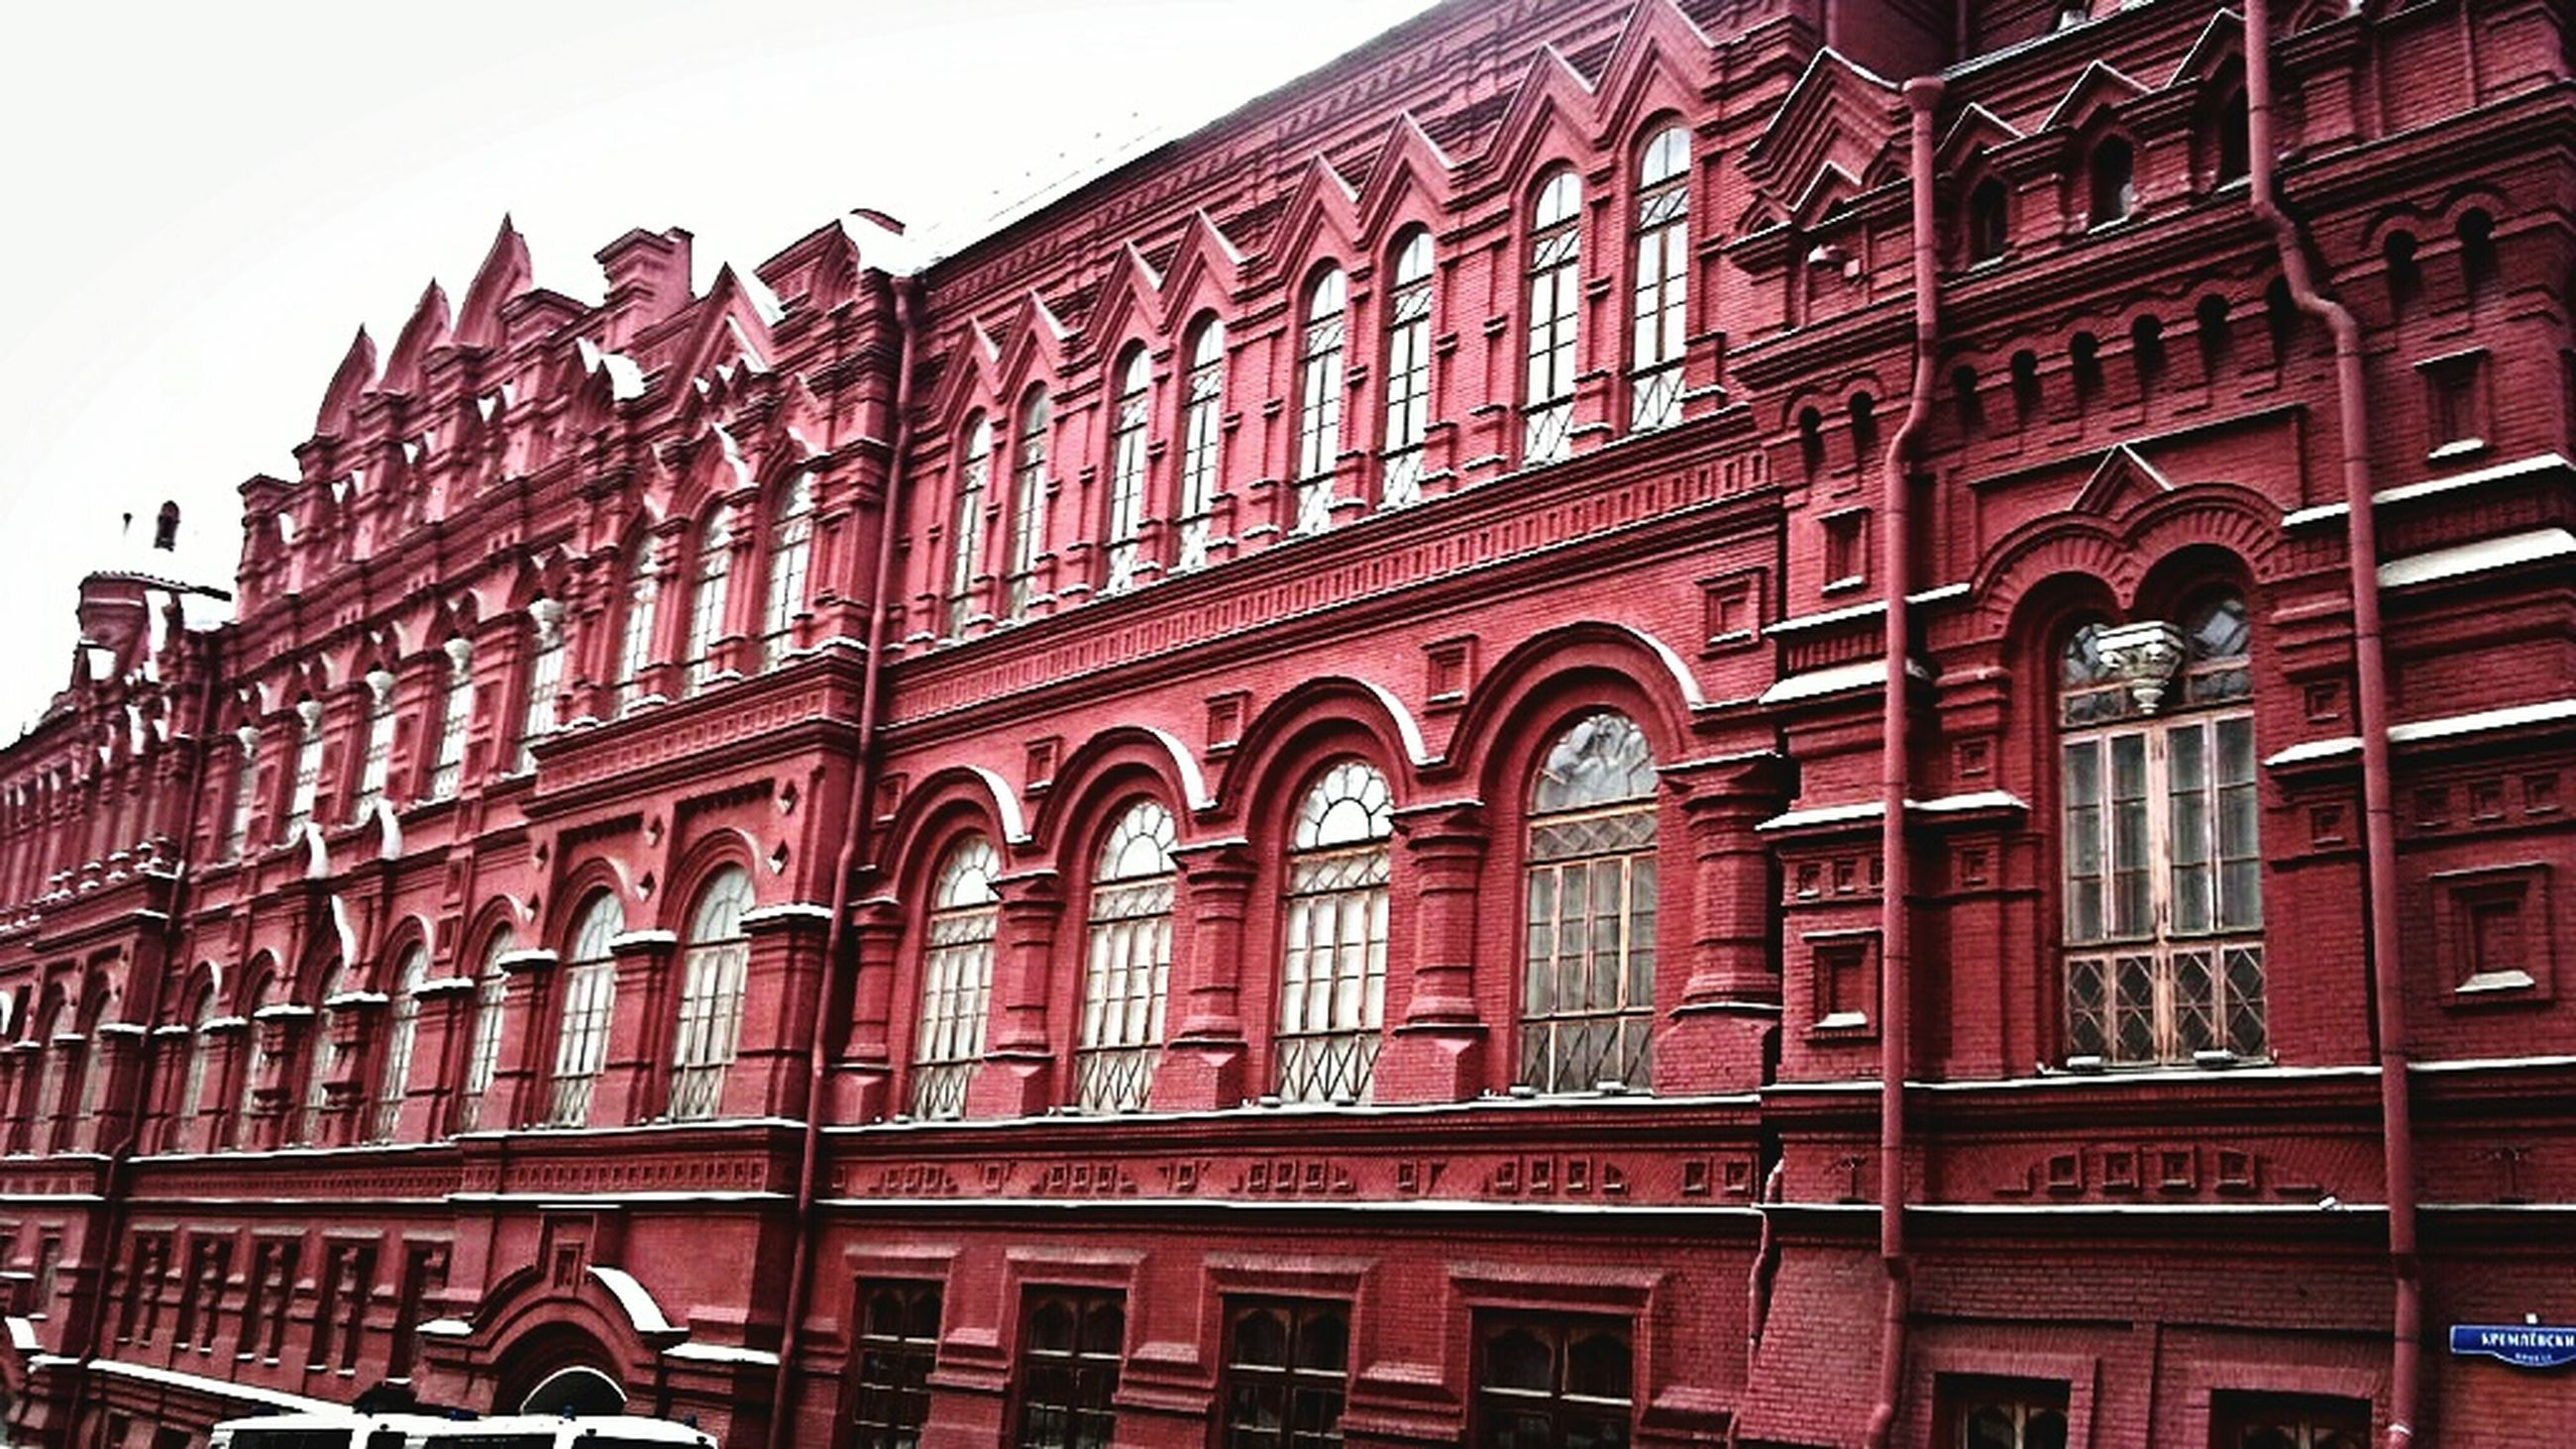 architecture, building exterior, built structure, low angle view, arch, window, city, facade, building, red, sky, day, travel destinations, outdoors, history, balcony, text, famous place, clear sky, city life